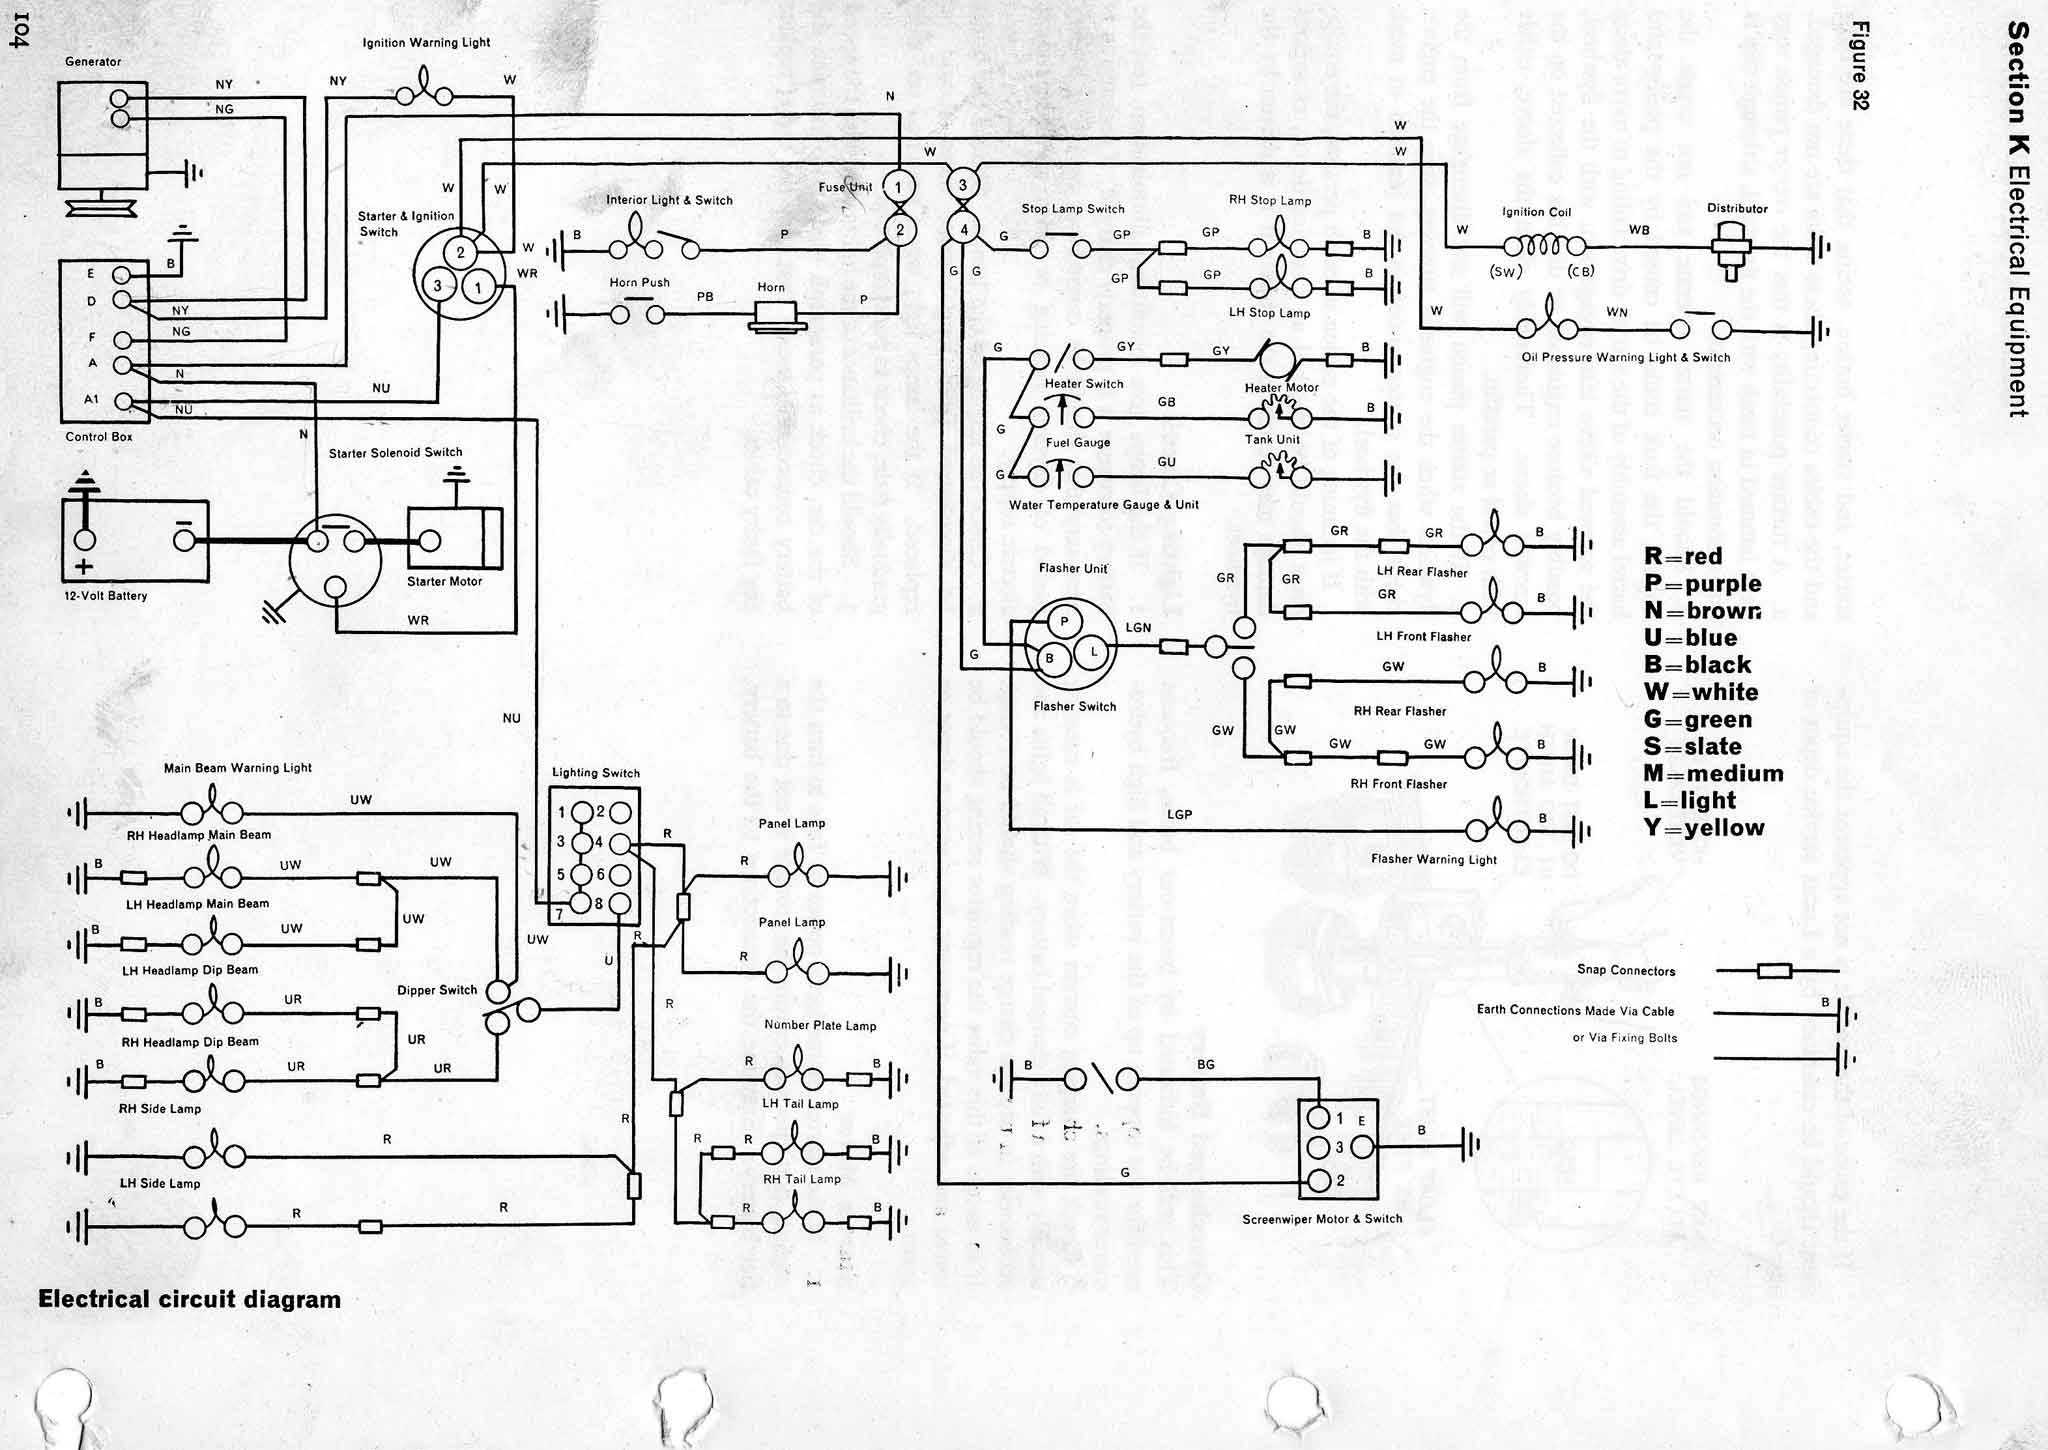 To 30 Wiring Diagram Auto Electrical Troy Bilt Rzt 50 Reliant Spares